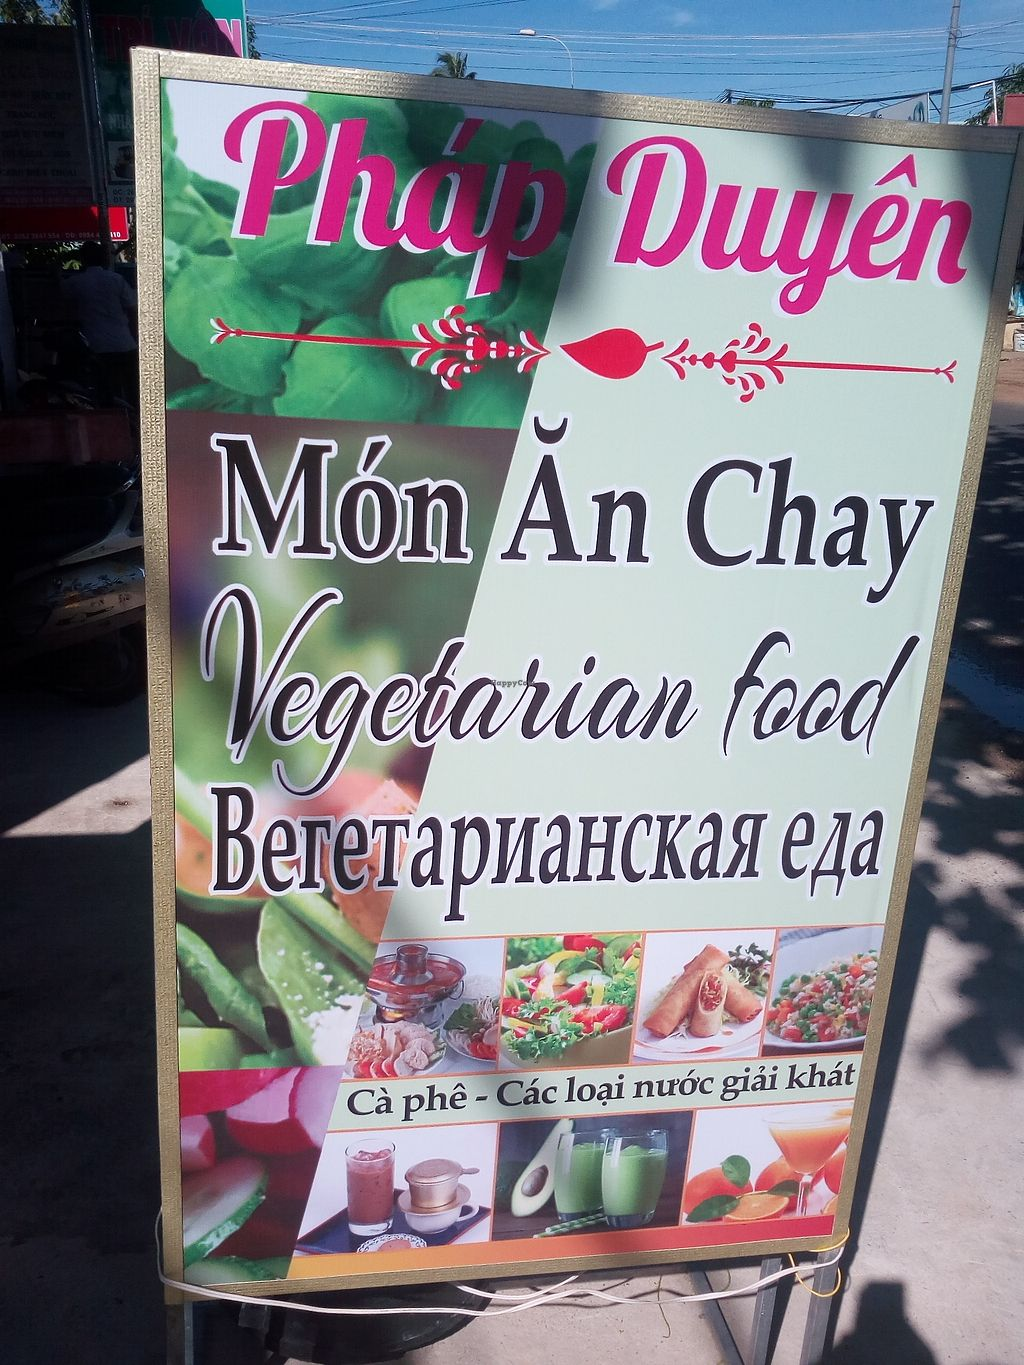 """Photo of Phap Duyen Mon An Chay  by <a href=""""/members/profile/Antonovy21"""">Antonovy21</a> <br/>Указатель <br/> January 10, 2018  - <a href='/contact/abuse/image/108756/344895'>Report</a>"""